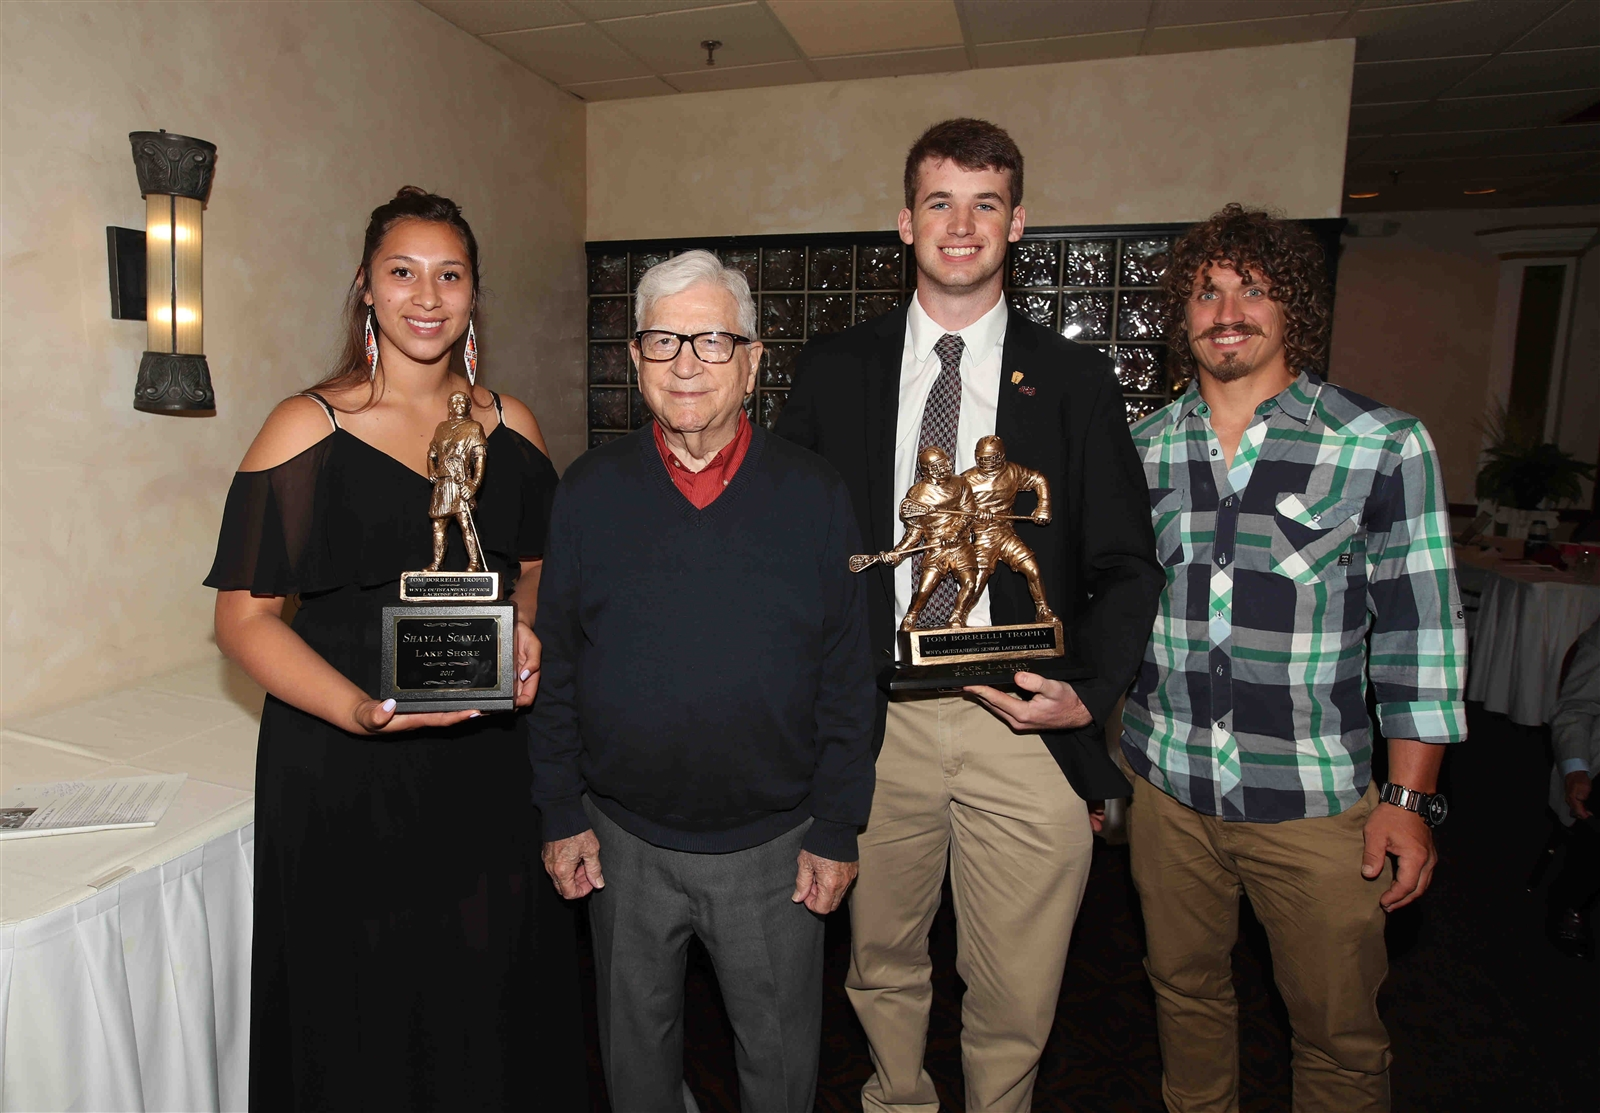 Mark Steenhuis of the Buffalo Bandits (far right) and George Borrelli, father of Tom Borrelli, pose for a picture with the winners of the 2017 Borrelli Awards, given to the top senior lacrosse players in Western New York: Shayla Scanlan of Lake Shore and Jack Lalley of St. Joe's.